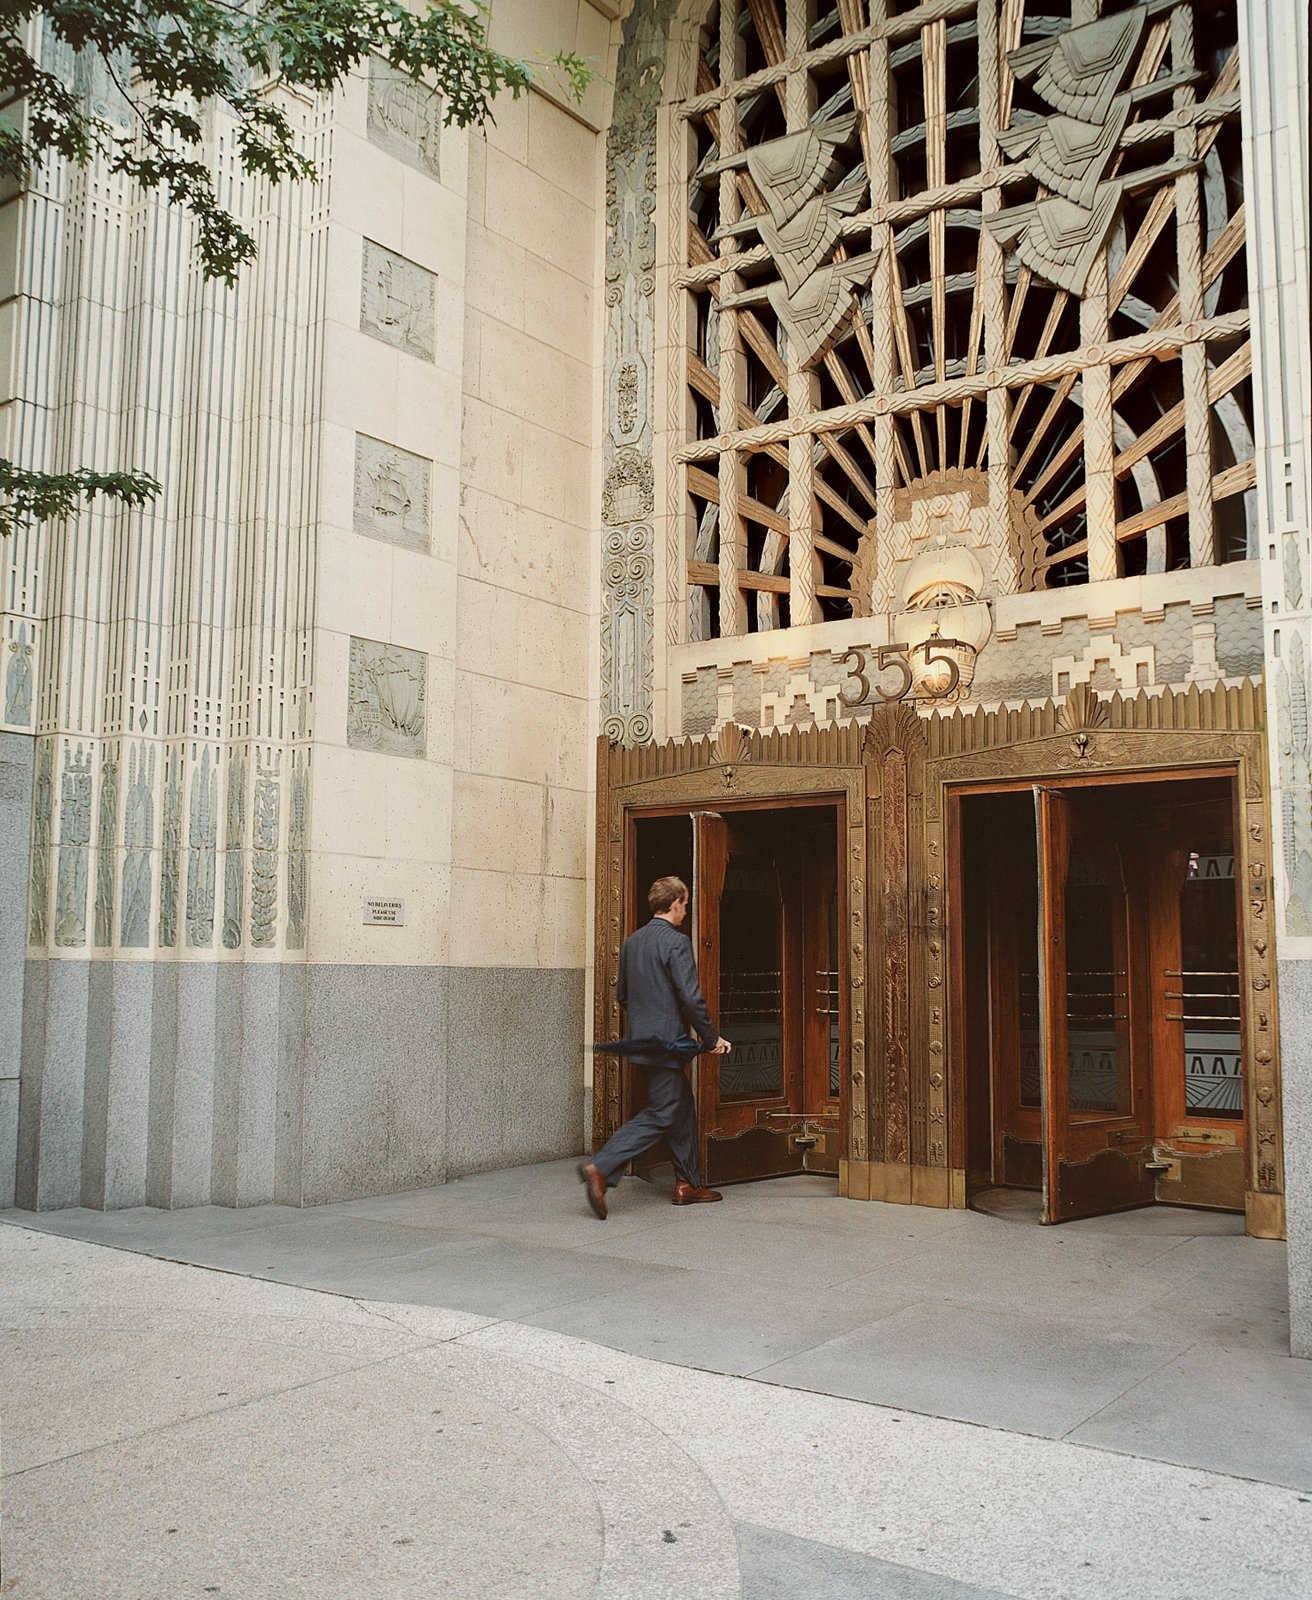 A masterful tribute to both aquatic ardor and to the intricacies of carving by hand, the Marine Building remains a well-preserved piece of Vancouver's Art Deco past.  Photo 5 of 8 in Vancouver is an extroverted city